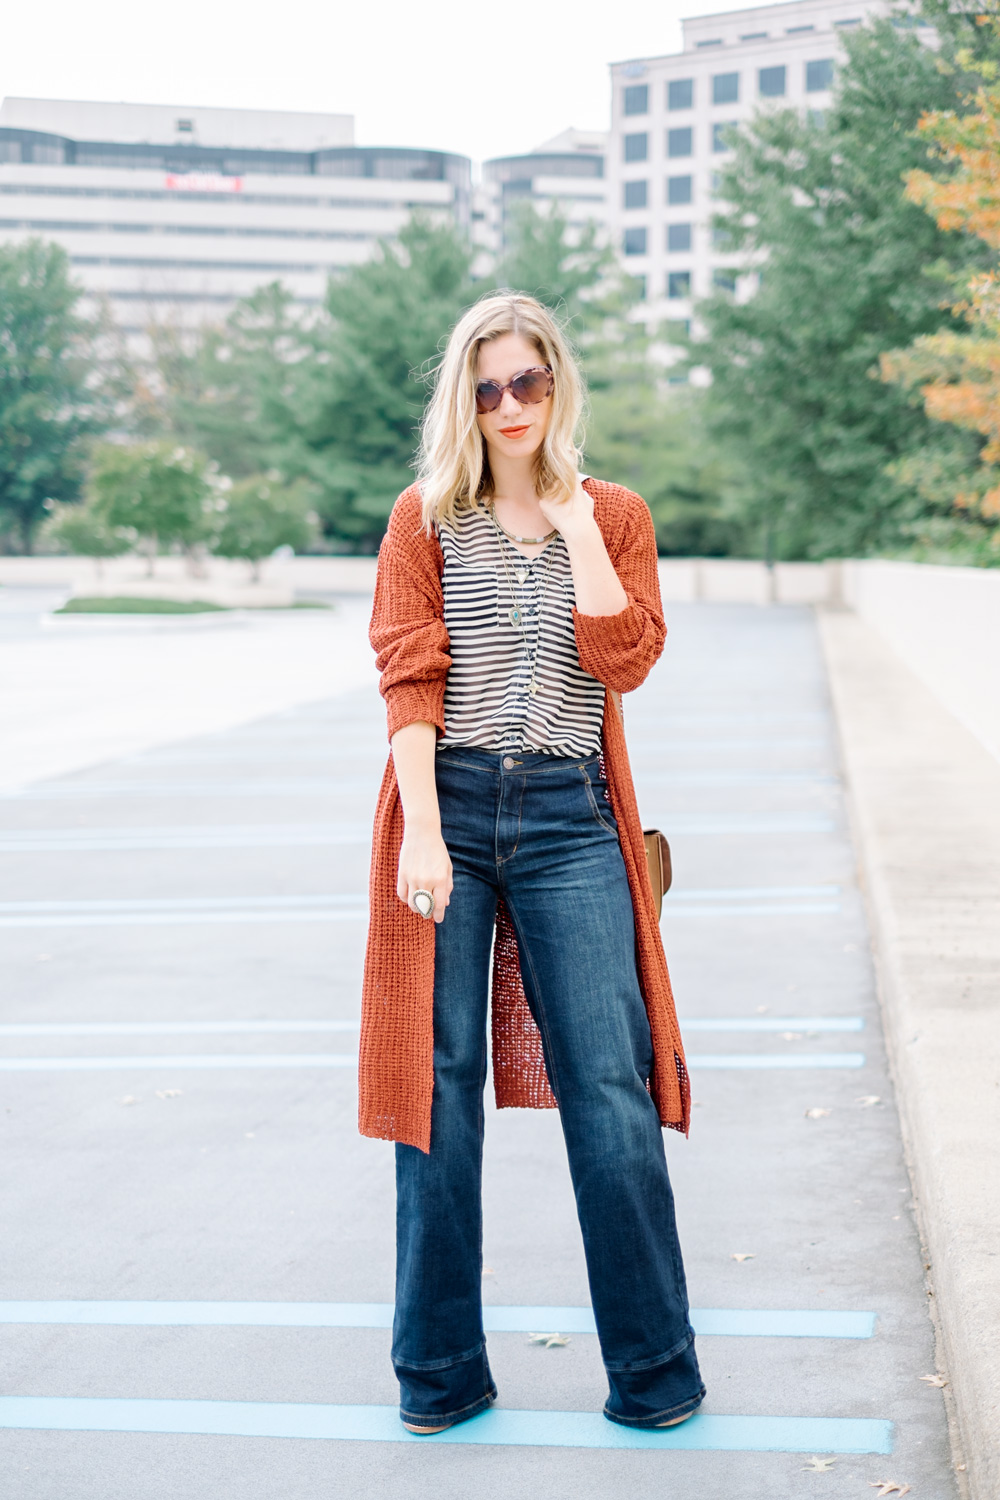 On Julien:  Bobeau duster cardigan  (more  Bobeau from Nordstrom ),  Free People jeans , vintage top ( similar ),  Free People necklace  c/o.  J.Crew mules .  Samantha Wills  ring. H&M bag.  Claire Ashley for Makeup Meltdown lipstick  in SIREN.